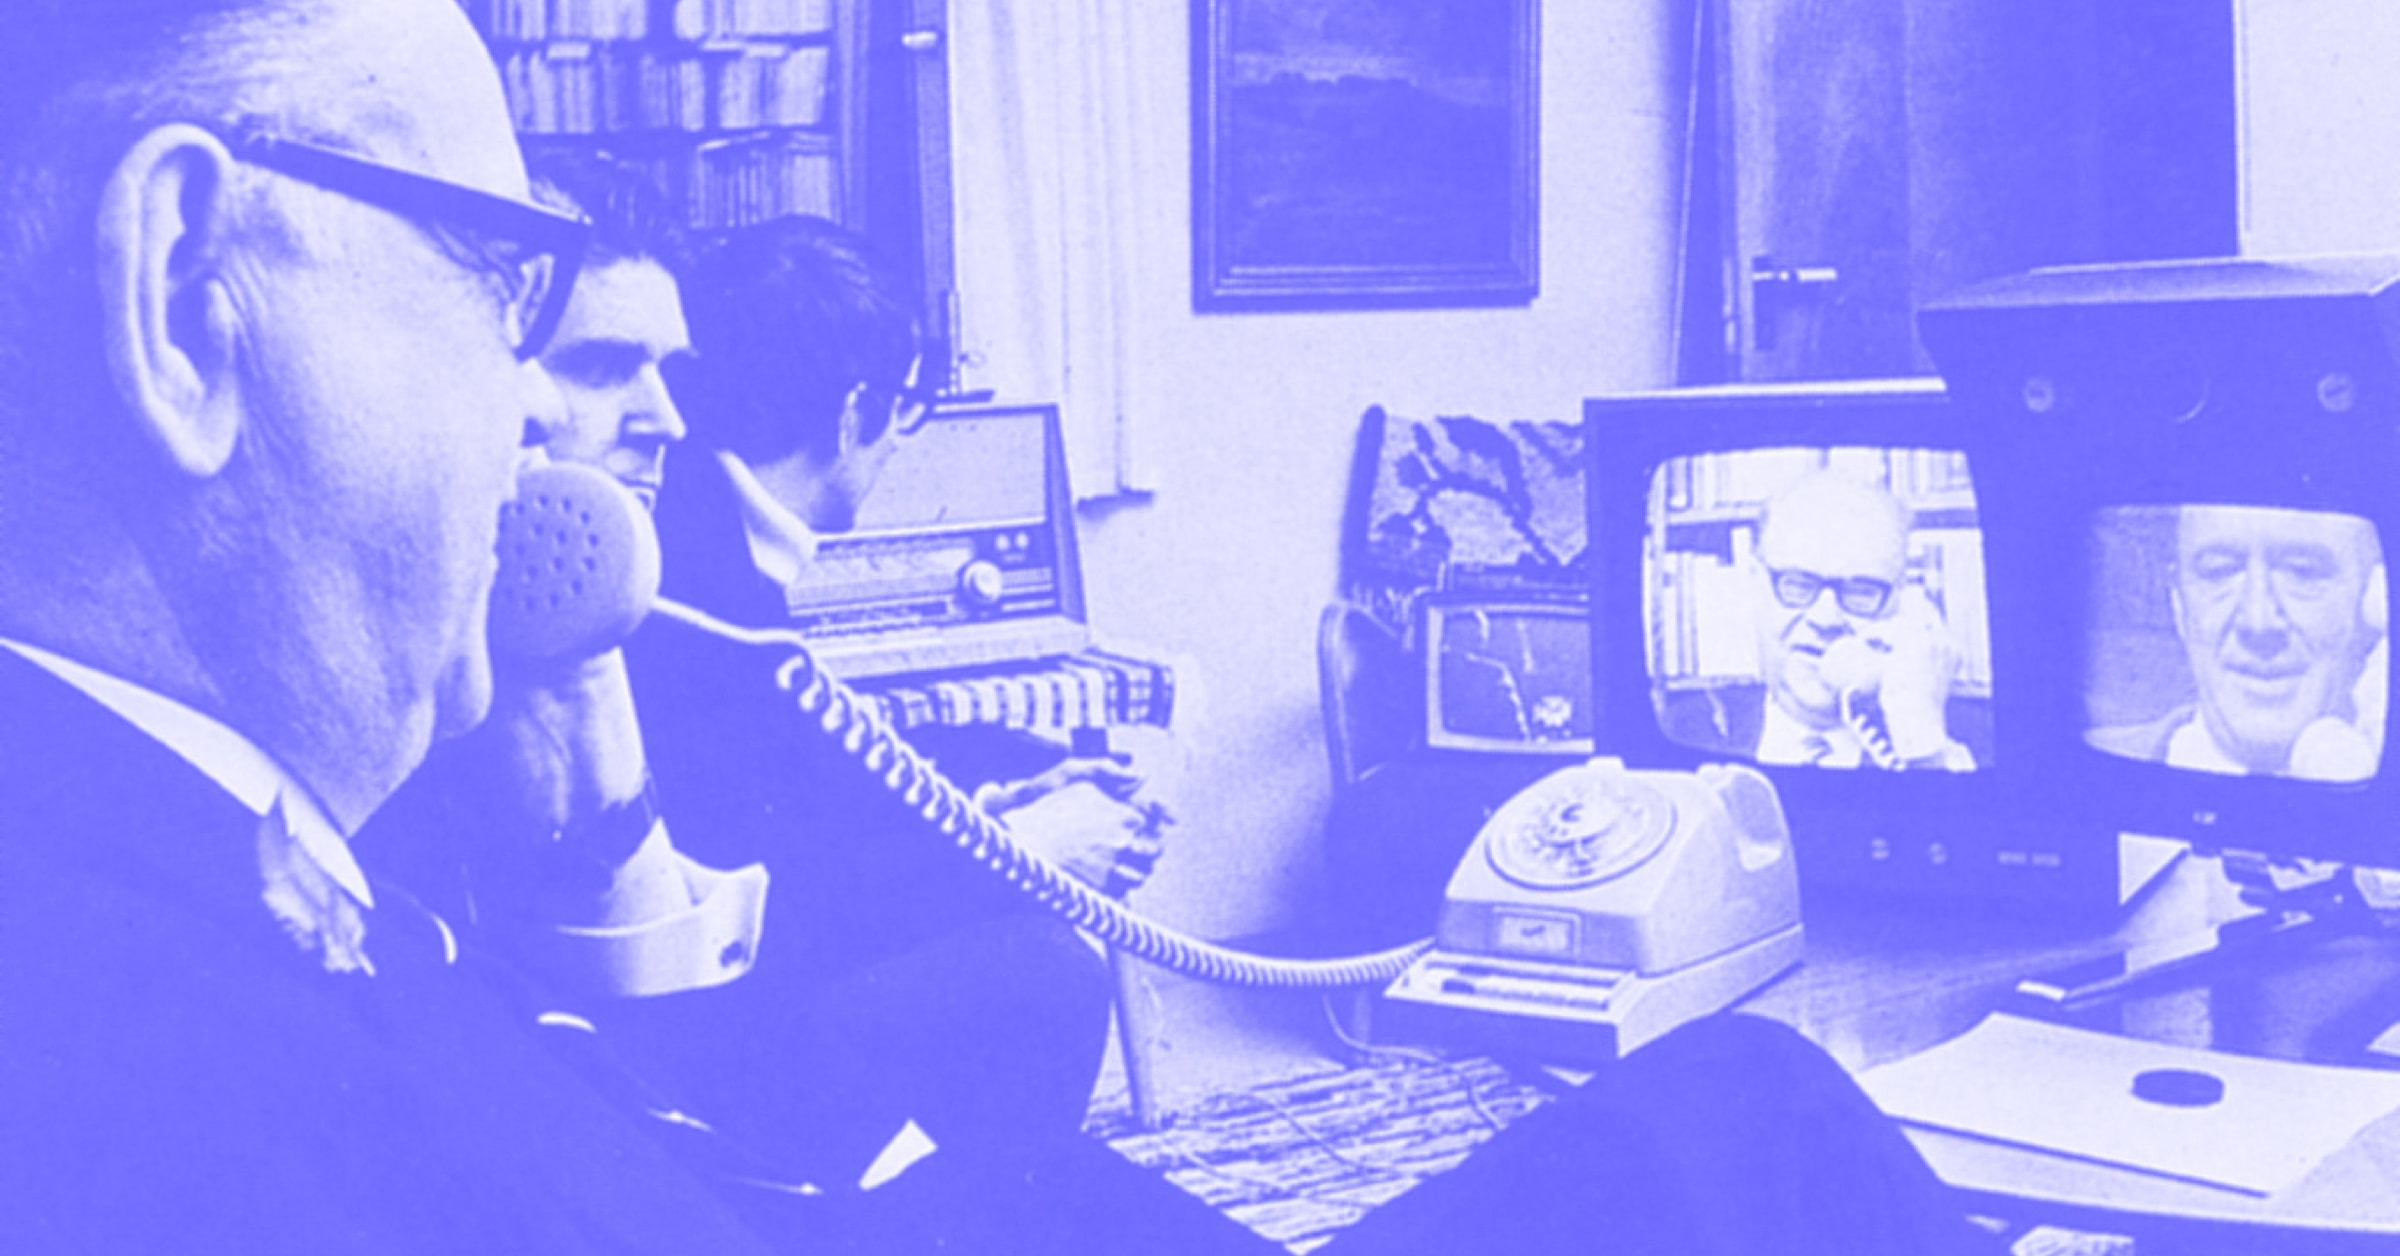 Let's go back in time to the very beginning when video conferencing was first introduced as a faster, more efficient way to communicate, and how it has evolved throughout the years to today's modern meeting experience.